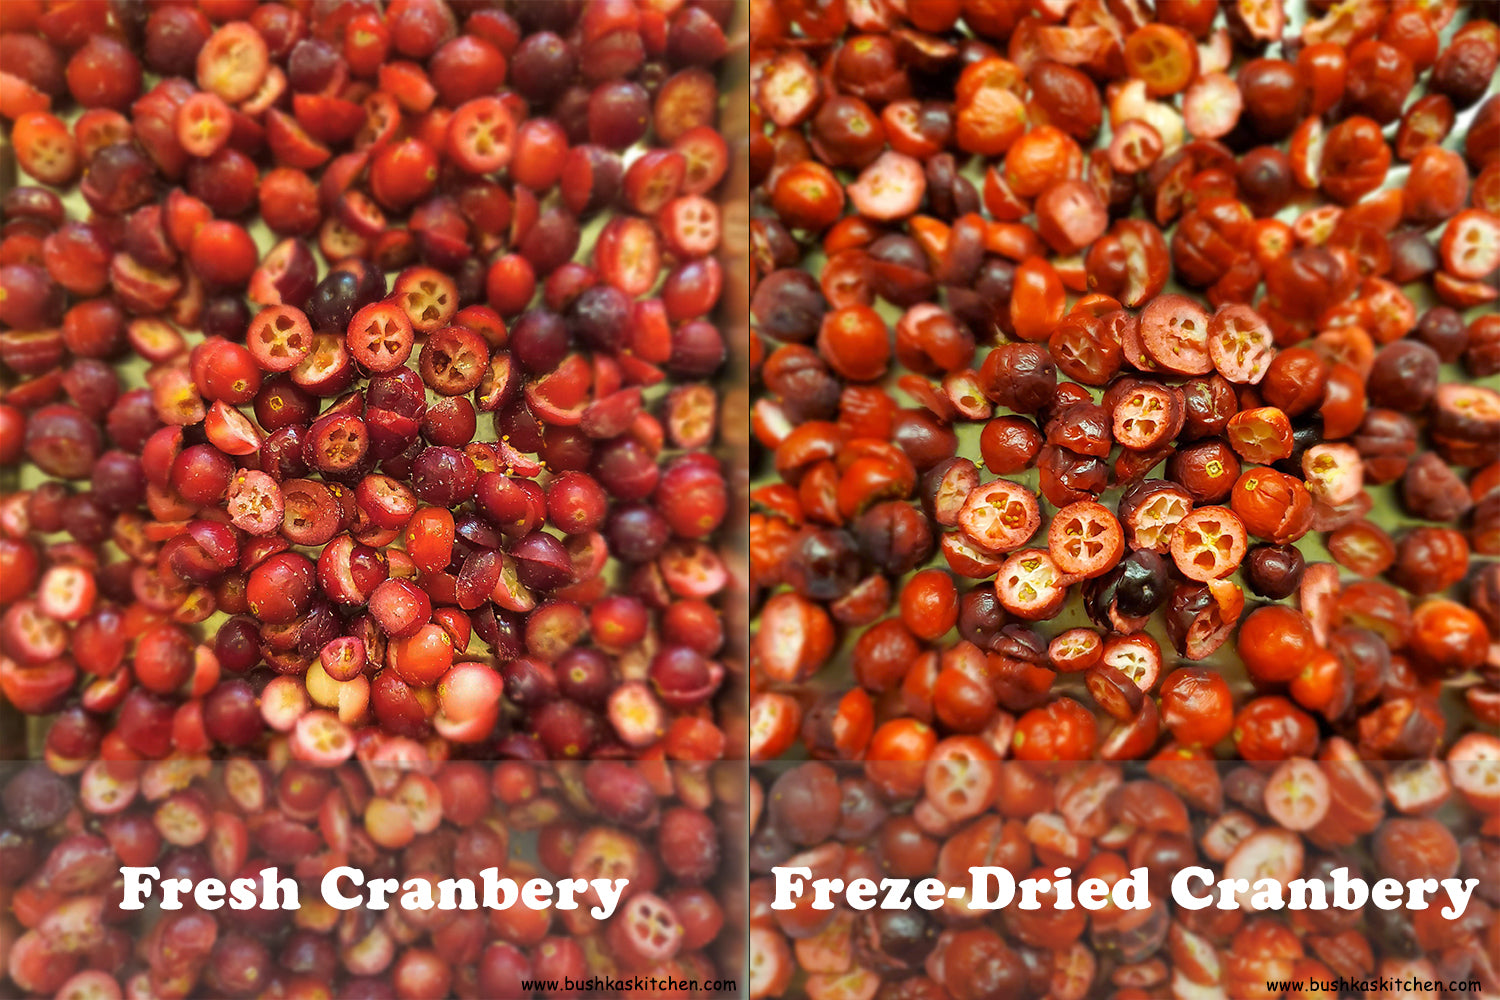 freeze dried cranberries vs fresh cranberries